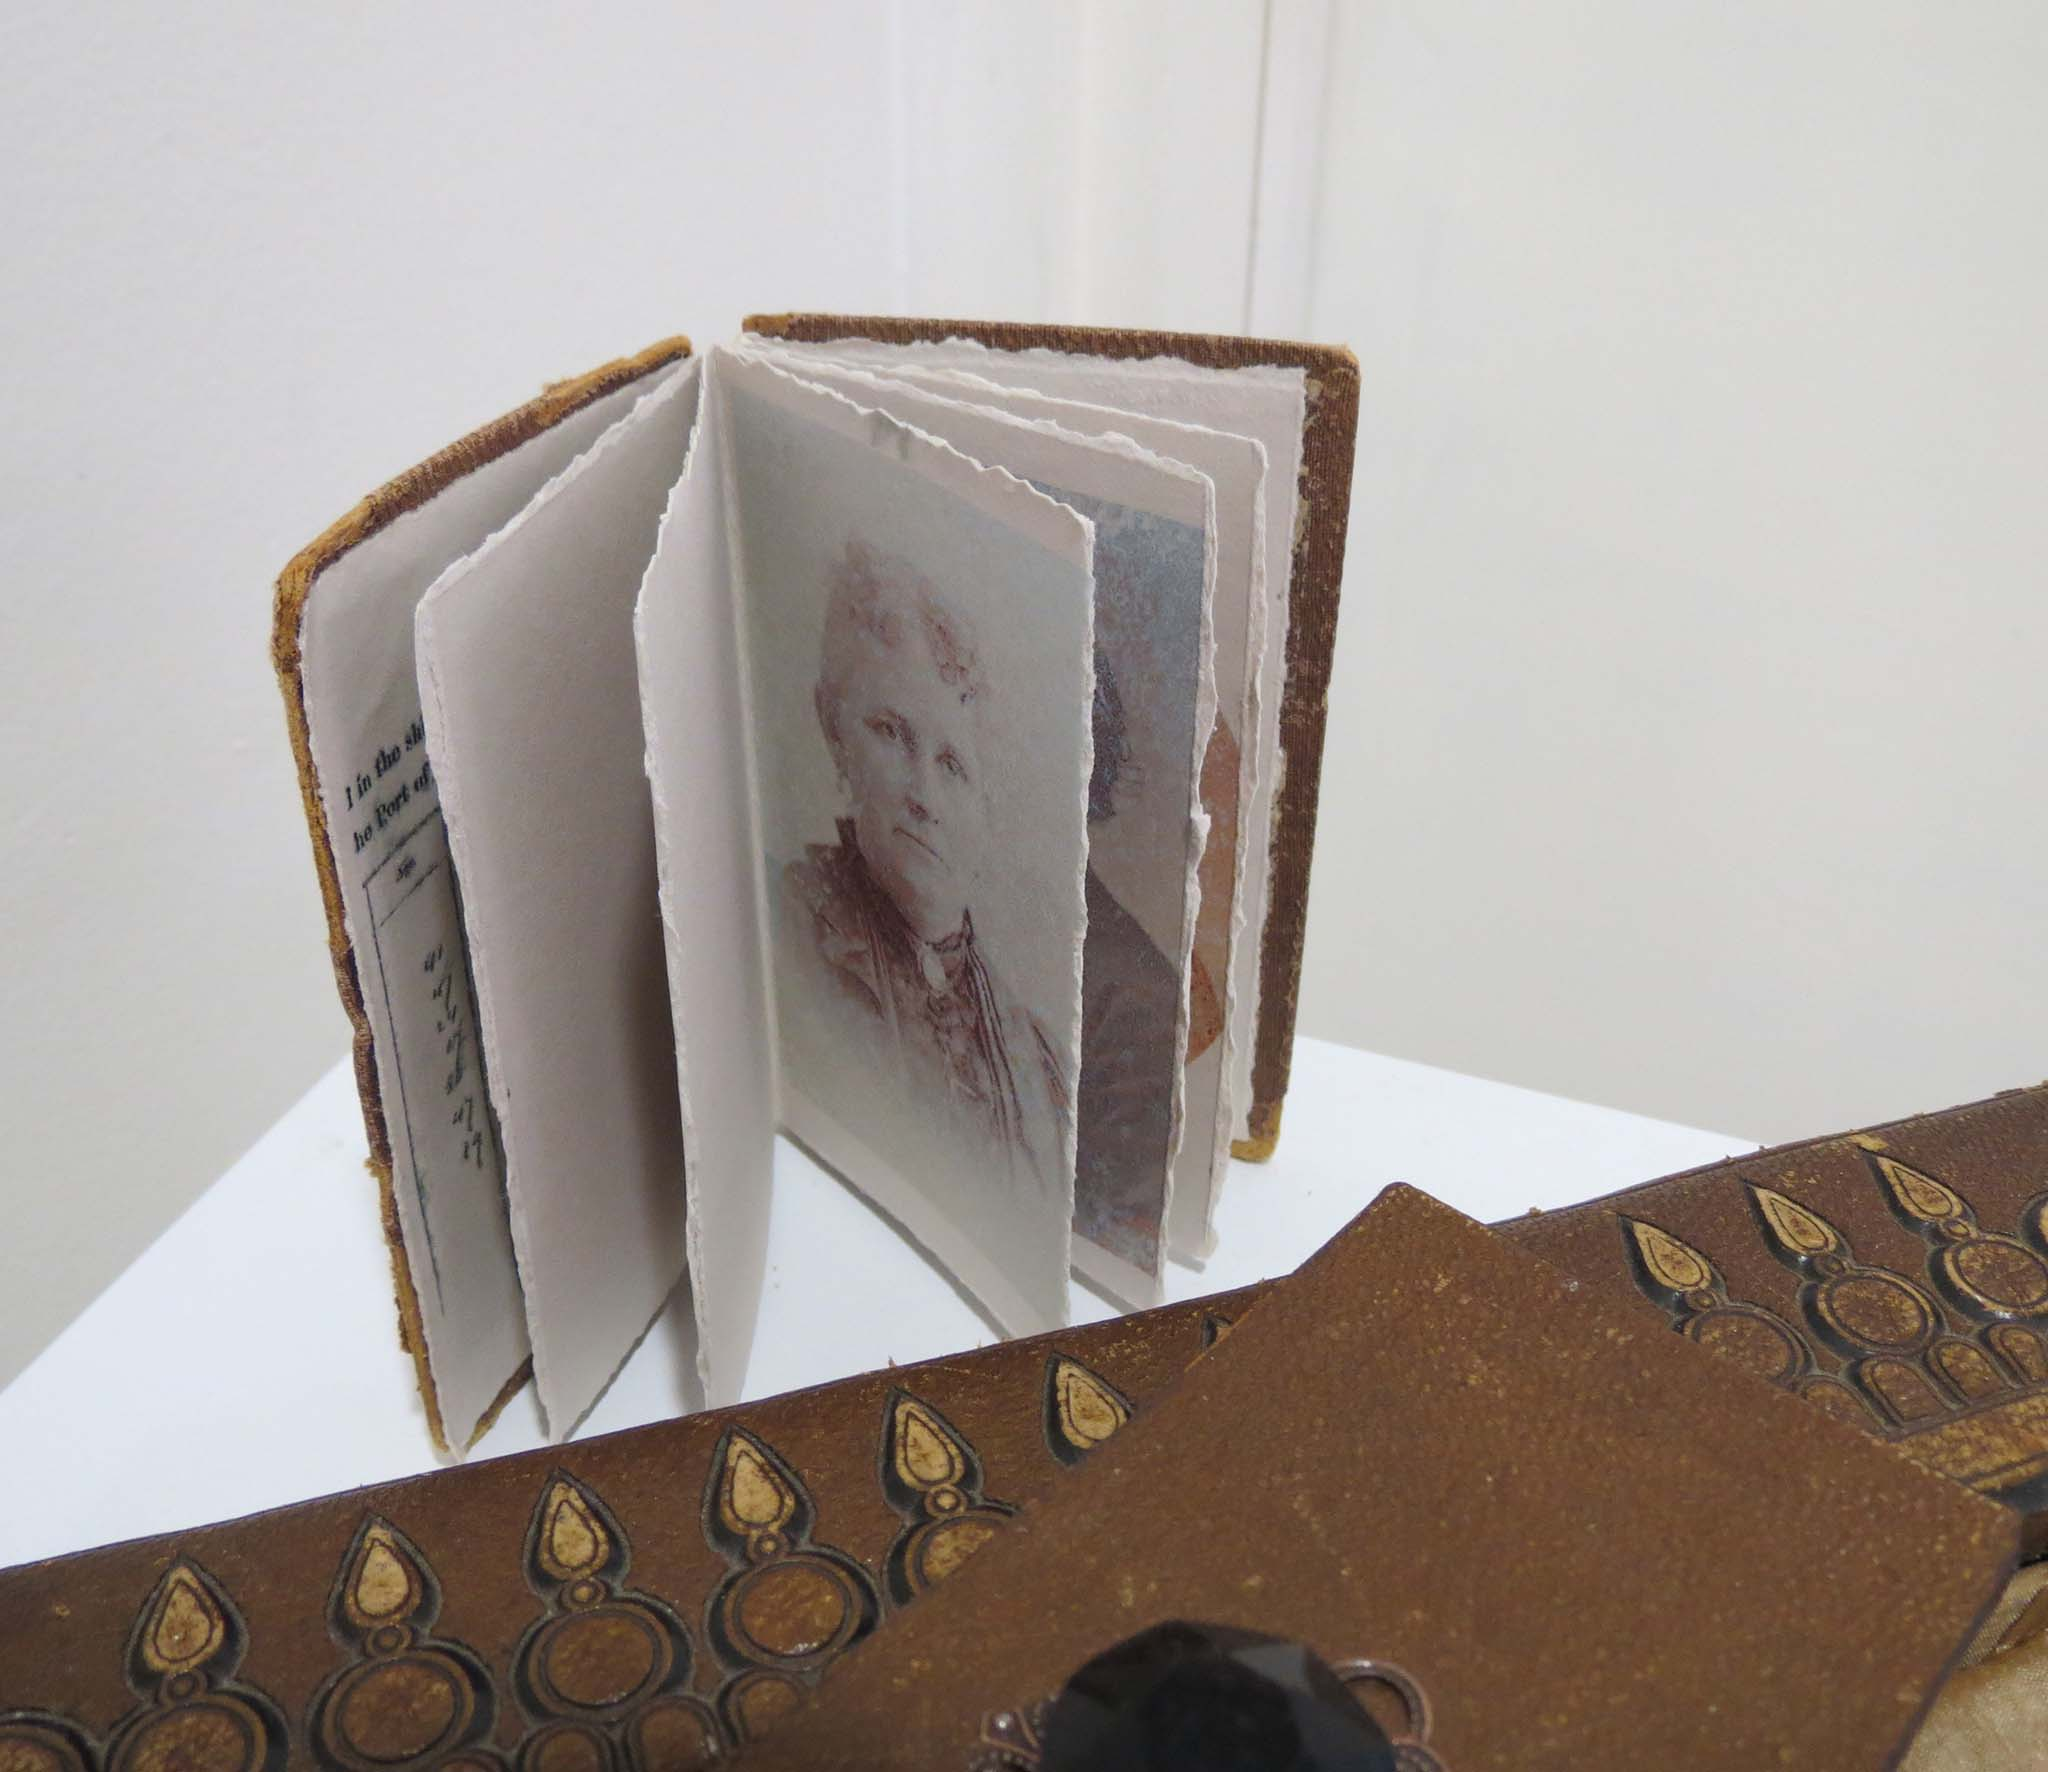 32. Kathy Aspinall, 'The Letter', 2015, Victorian photograph album, letter, small book, necklace, altered book, $1,200